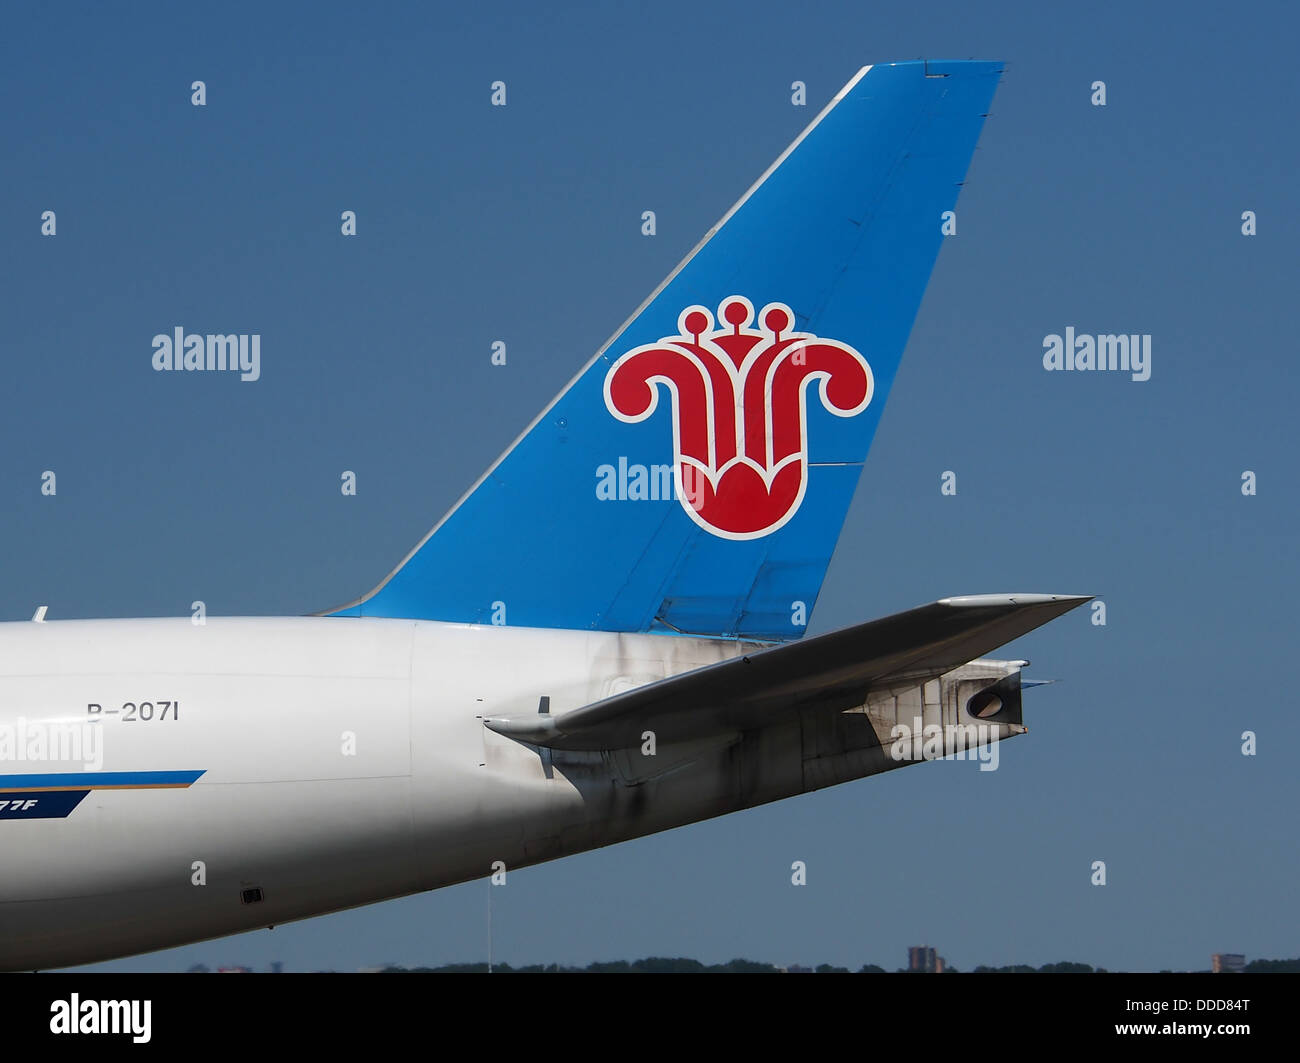 B-2071 China Southern Airlines Boeing 777-F1B - cn 37309, taxiing 21july2013 pic-005 - Stock Image